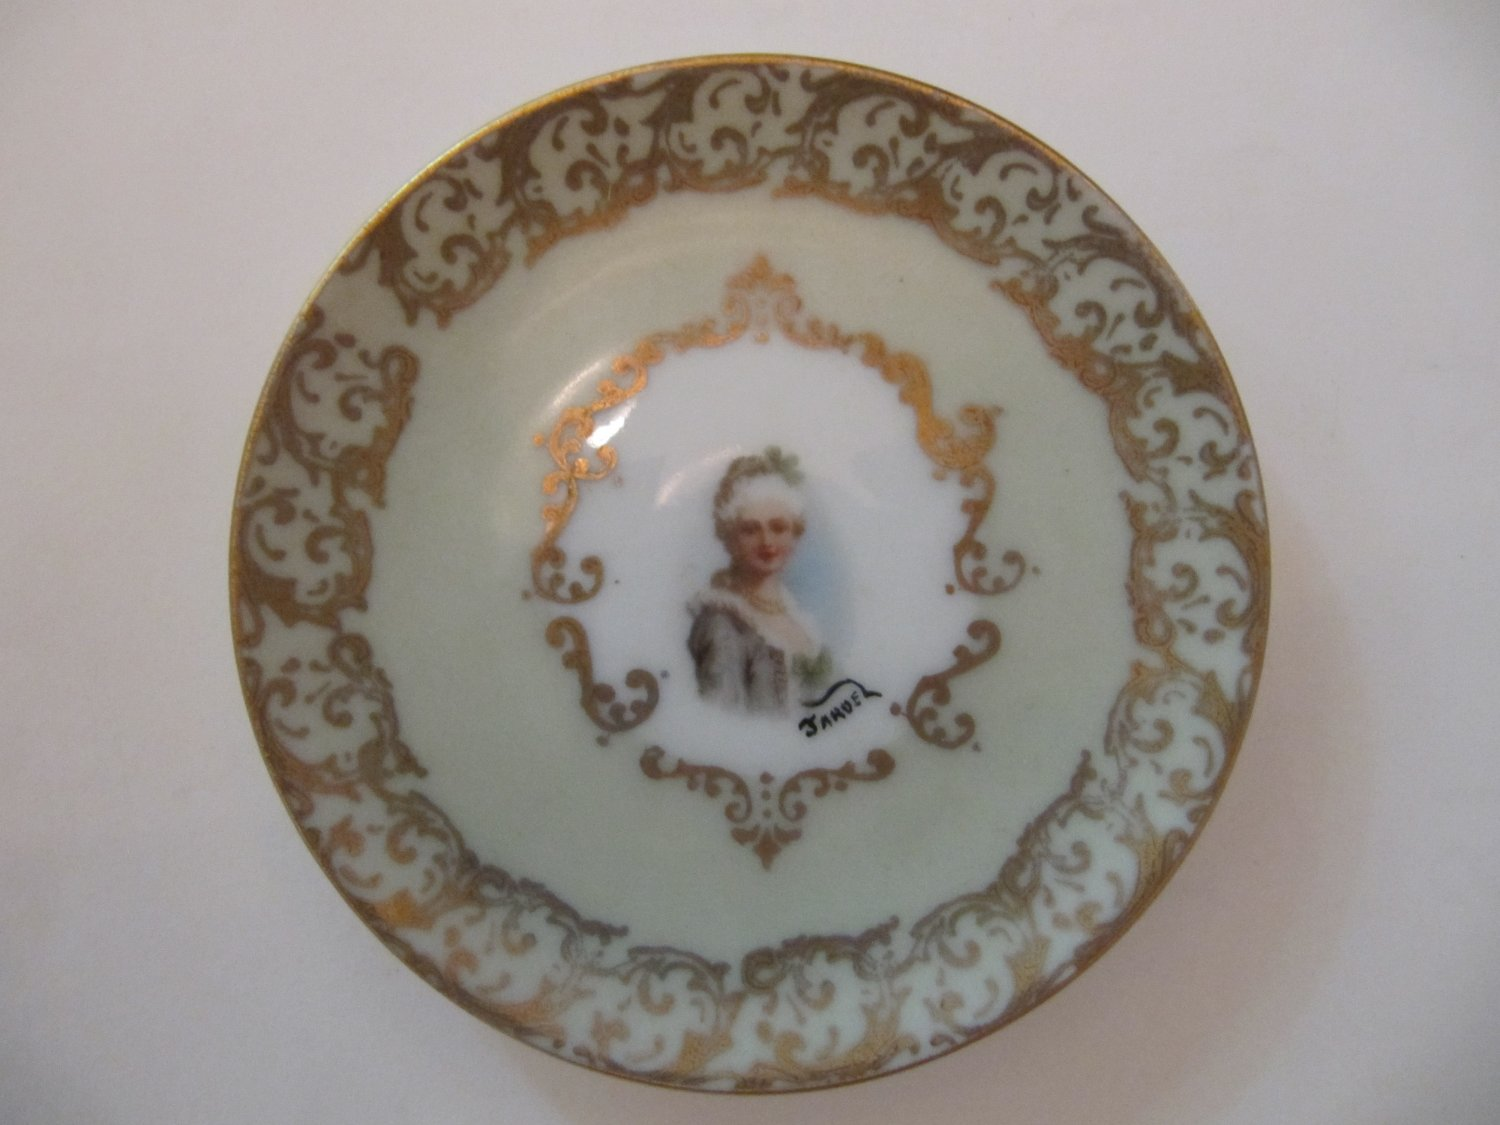 Vintage Jardel Small Handpainted Lady's Vanity Portrait Plate Trinket Dish 4 In